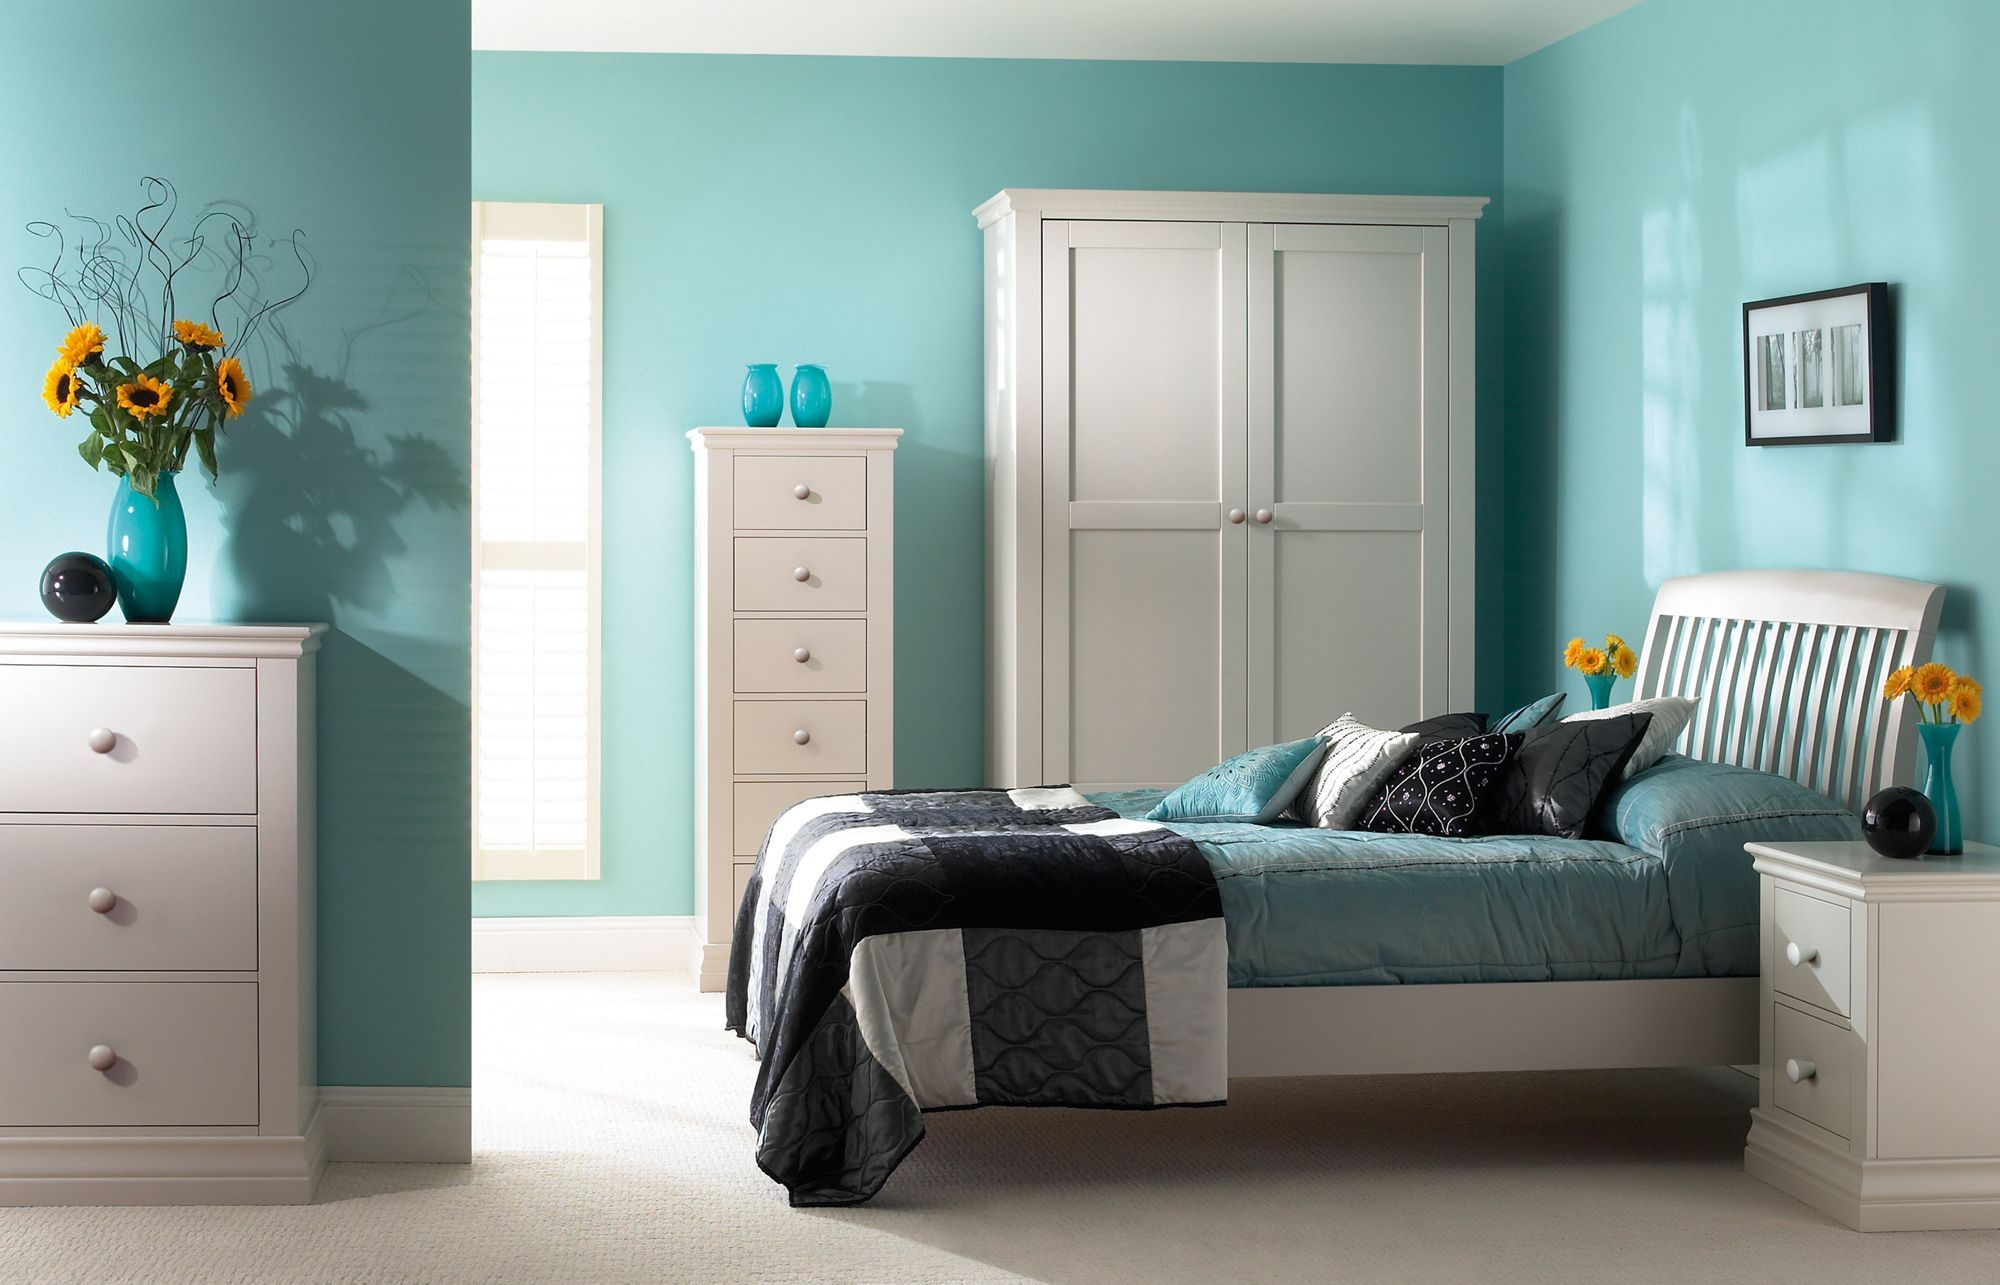 Turquoise Simple Master Bedroom Color Wall Design Decorating Ideas